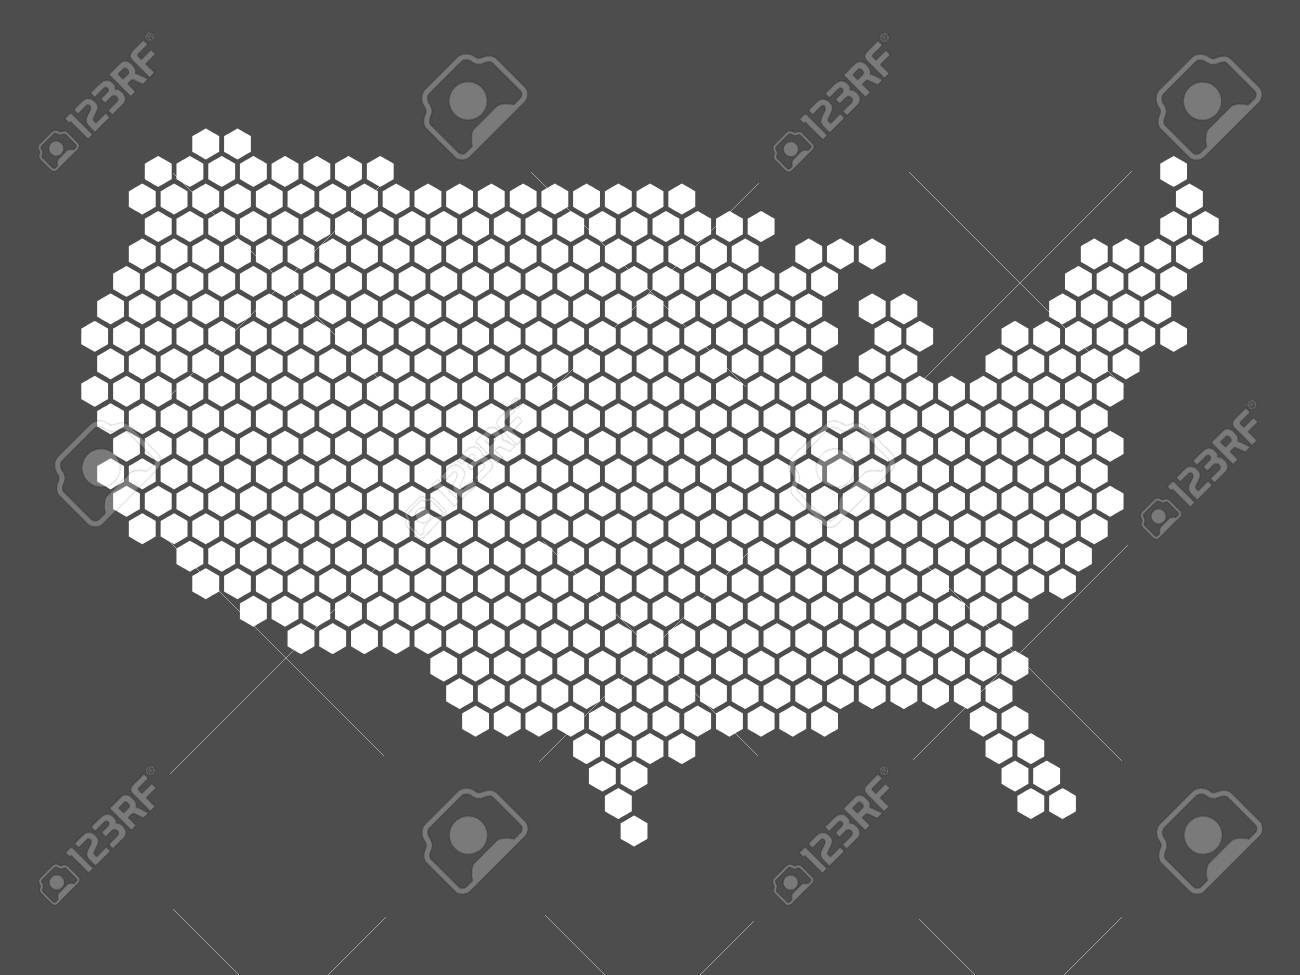 Flat Us Map.Abstract Map Of United States Of America Aka Usa Simple Flat